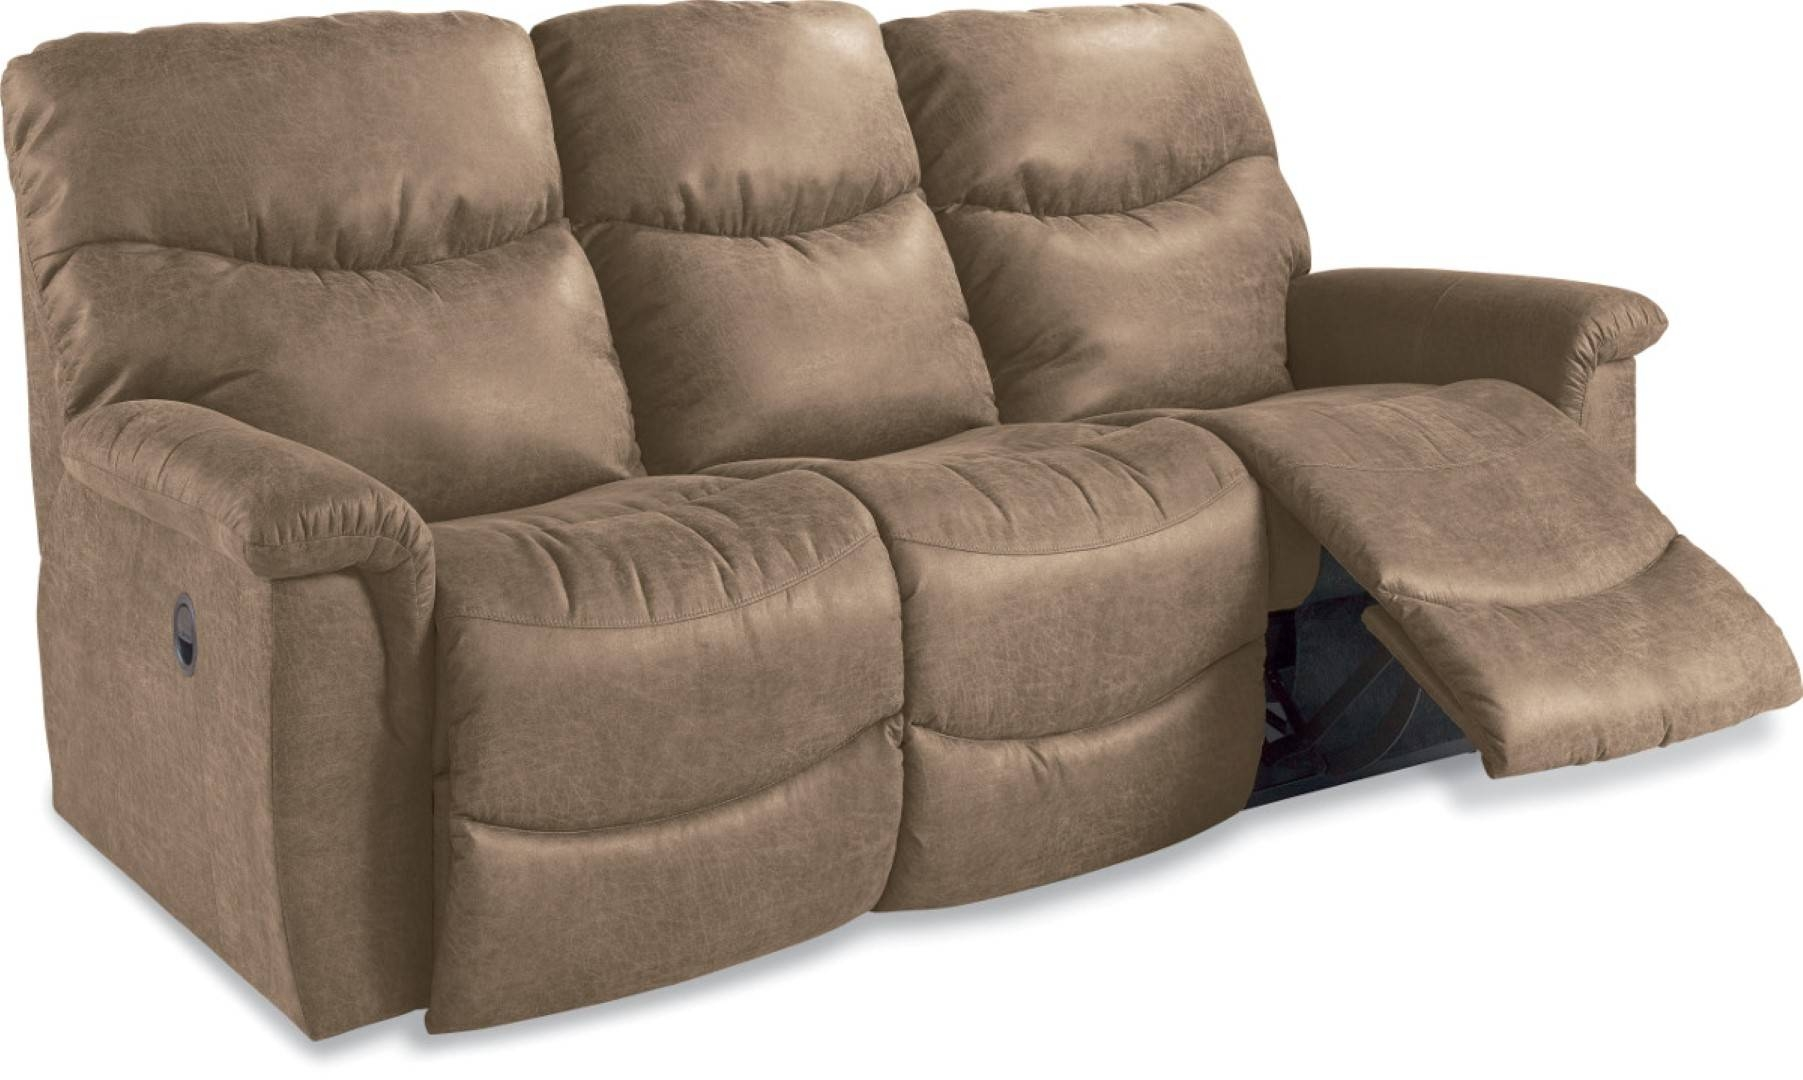 La-Z-Boy James Reclining Sofa - Town & Country Furniture throughout Lazy Boy Sofas (Image 7 of 15)